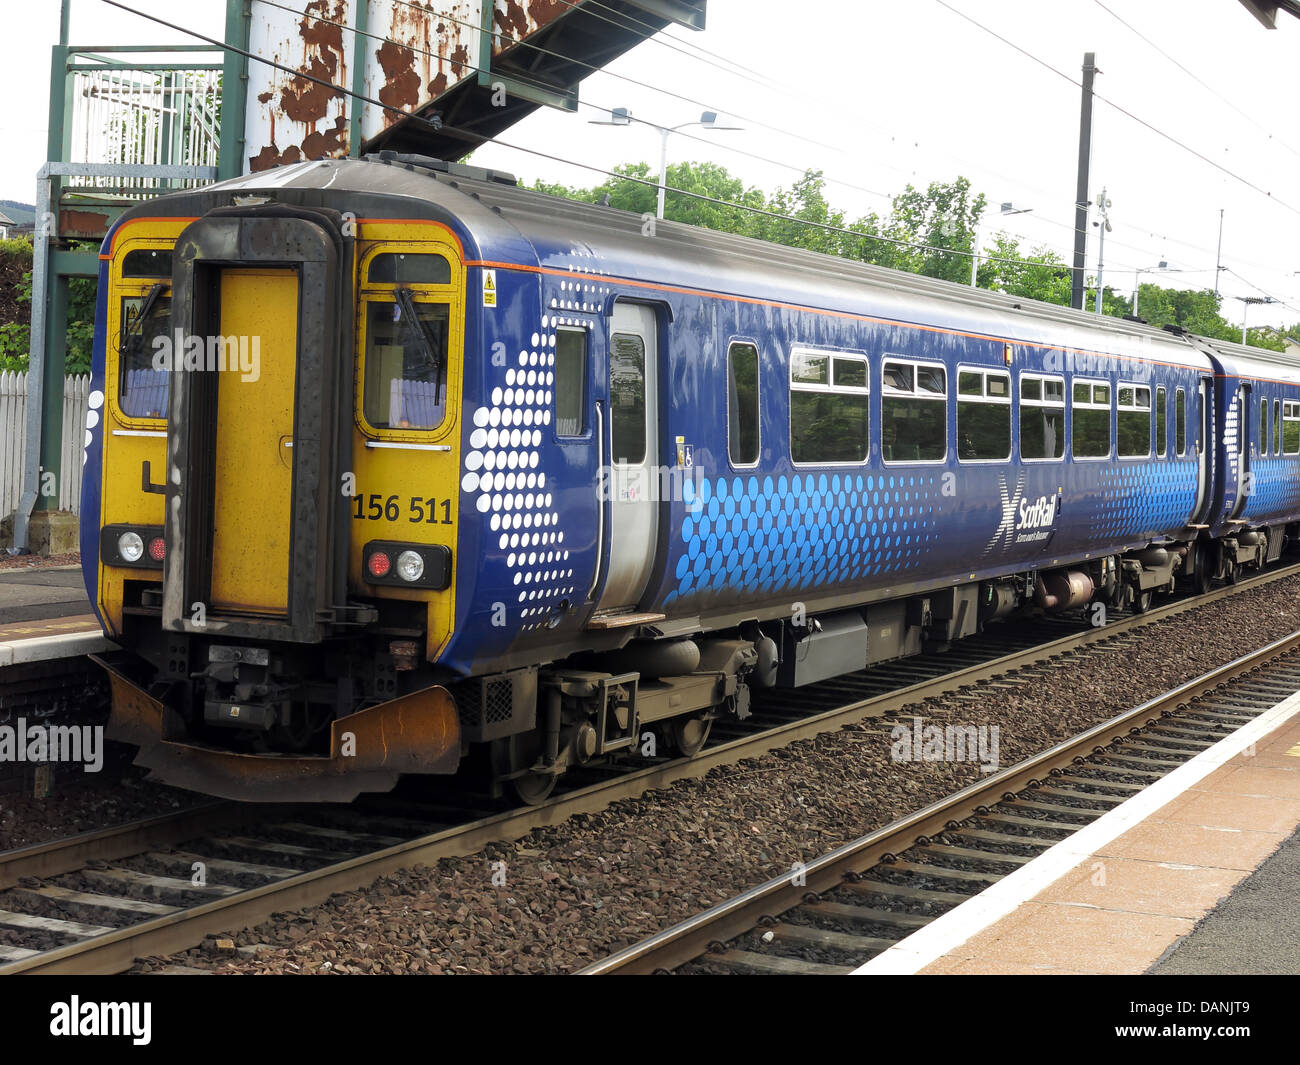 Scotrail,156511,Edinburgh,to,Glasgow,train,at,Slateford,Railway,Station,commuter,transport,evening,diesel,DMU,EH14,1BX,EH141BX,capital,city,sprinter,railroad,class156,class,156,BR,British,Rail,multiple-unit,multipleunit,multiple,unit,Metro-Cammell,Alstom,two-car,sets,two,car,FirstGroup,gotonysmith,Shotts,Line,-,Glasgow,Central,to,Edinburgh,Waverley,via,Cambuslang,Bellshill,and,Shotts,Saltire,markings,on,the,carriage,ends,Buy Pictures of,Buy Images Of